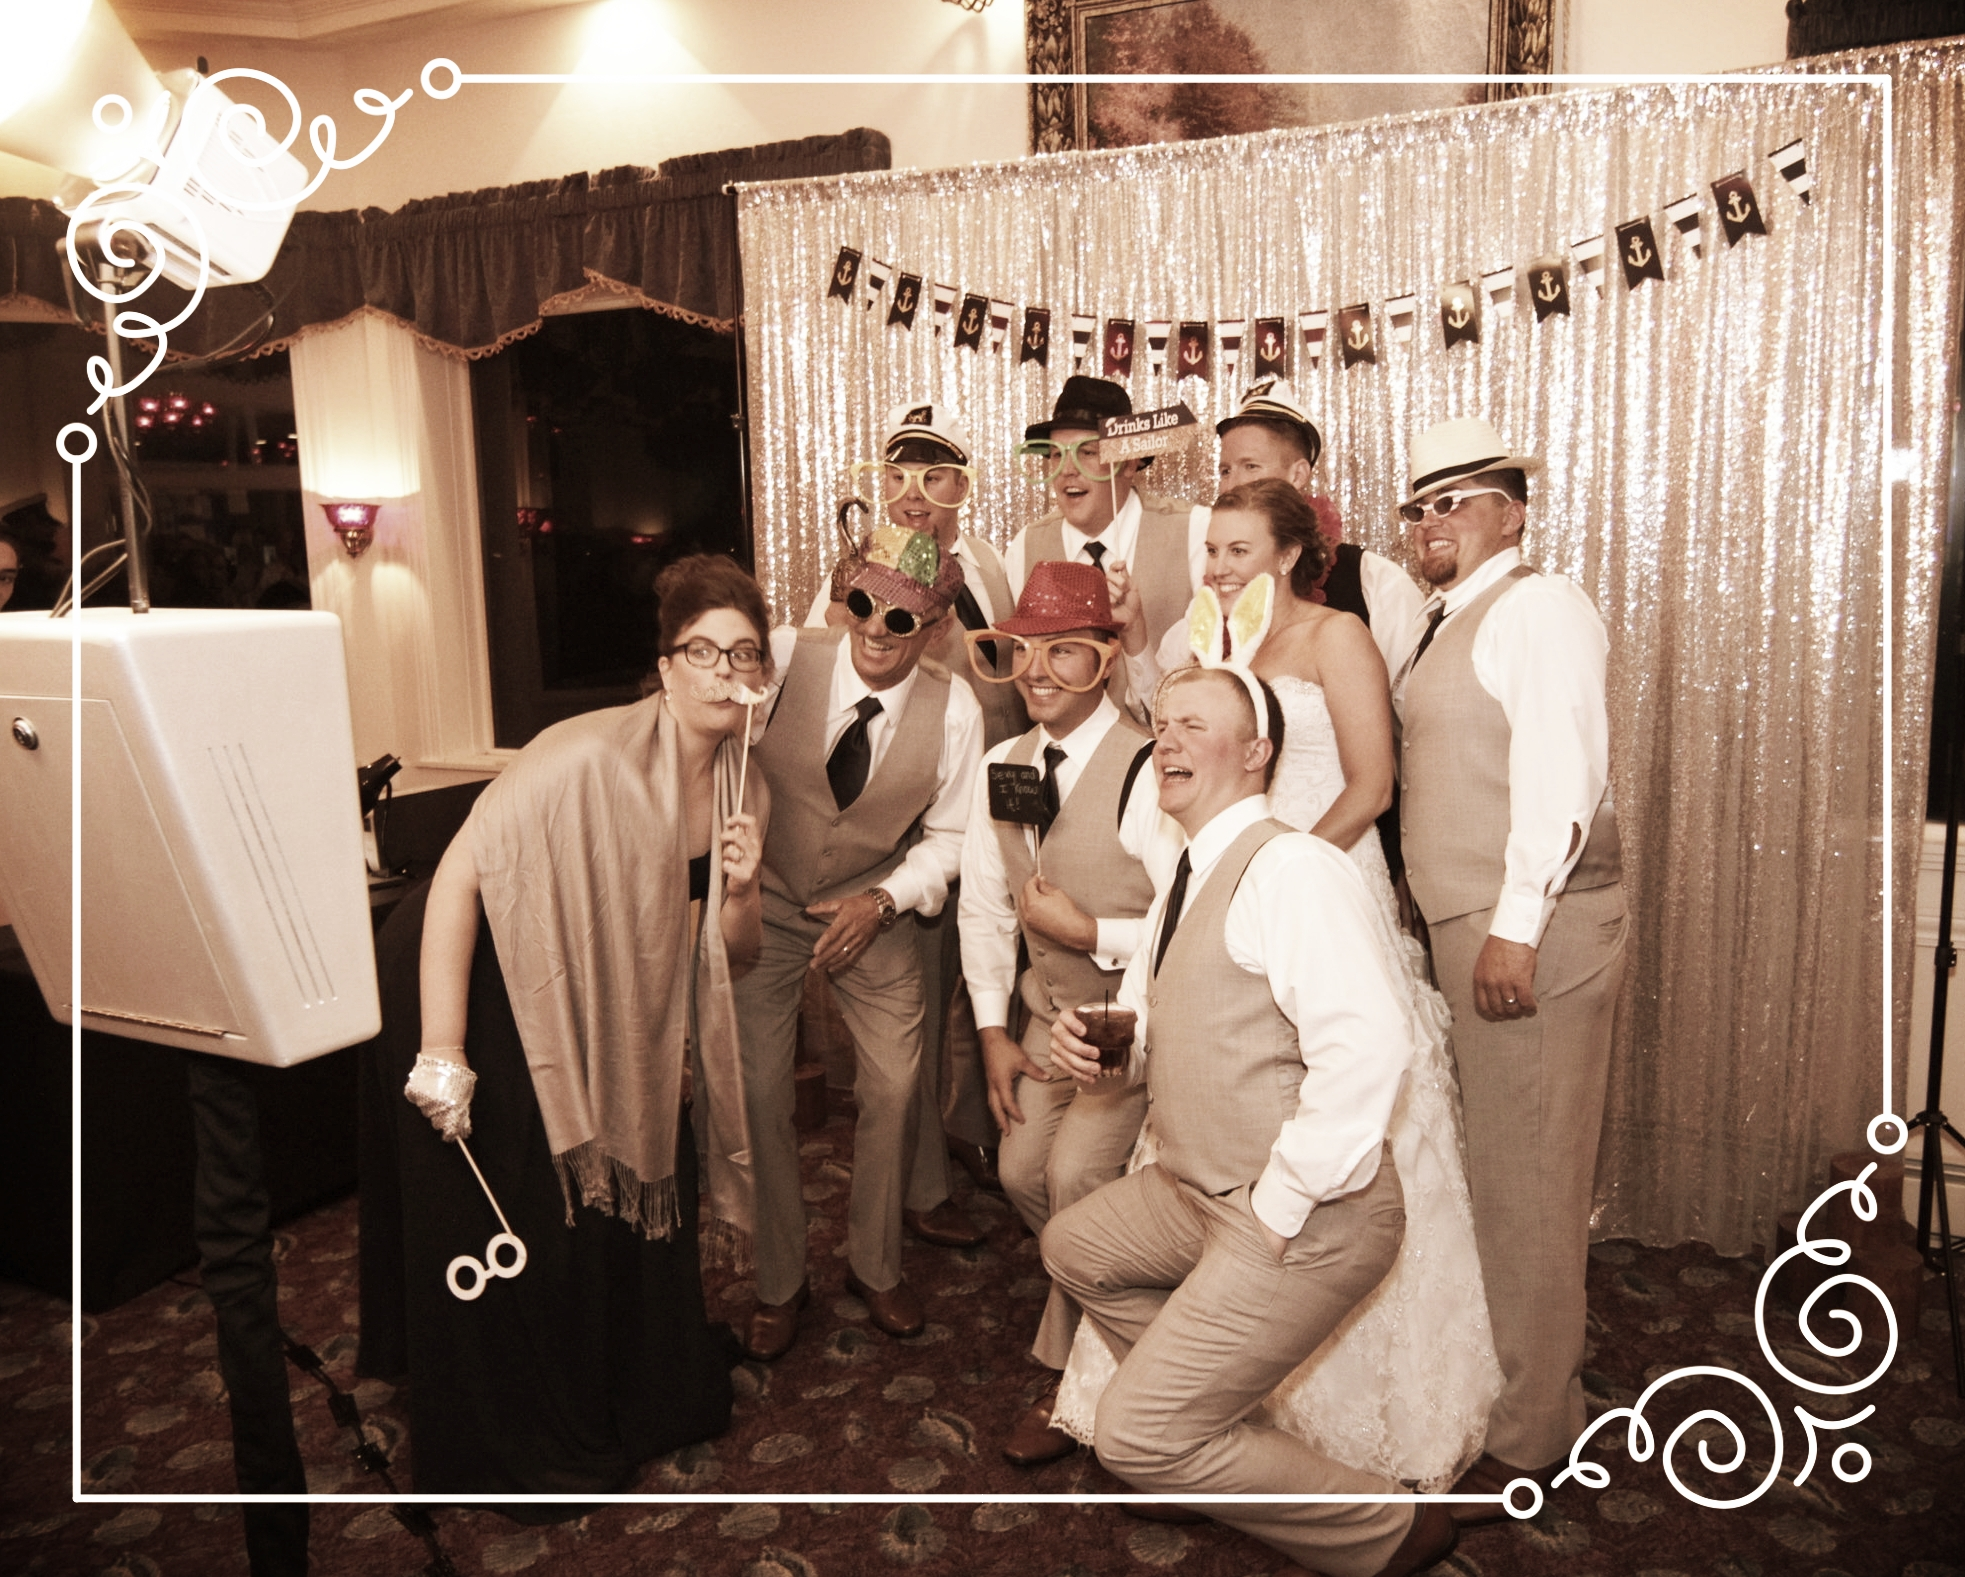 Our Modern PhotoBooth is a great way to have lots of guests in the Picture!